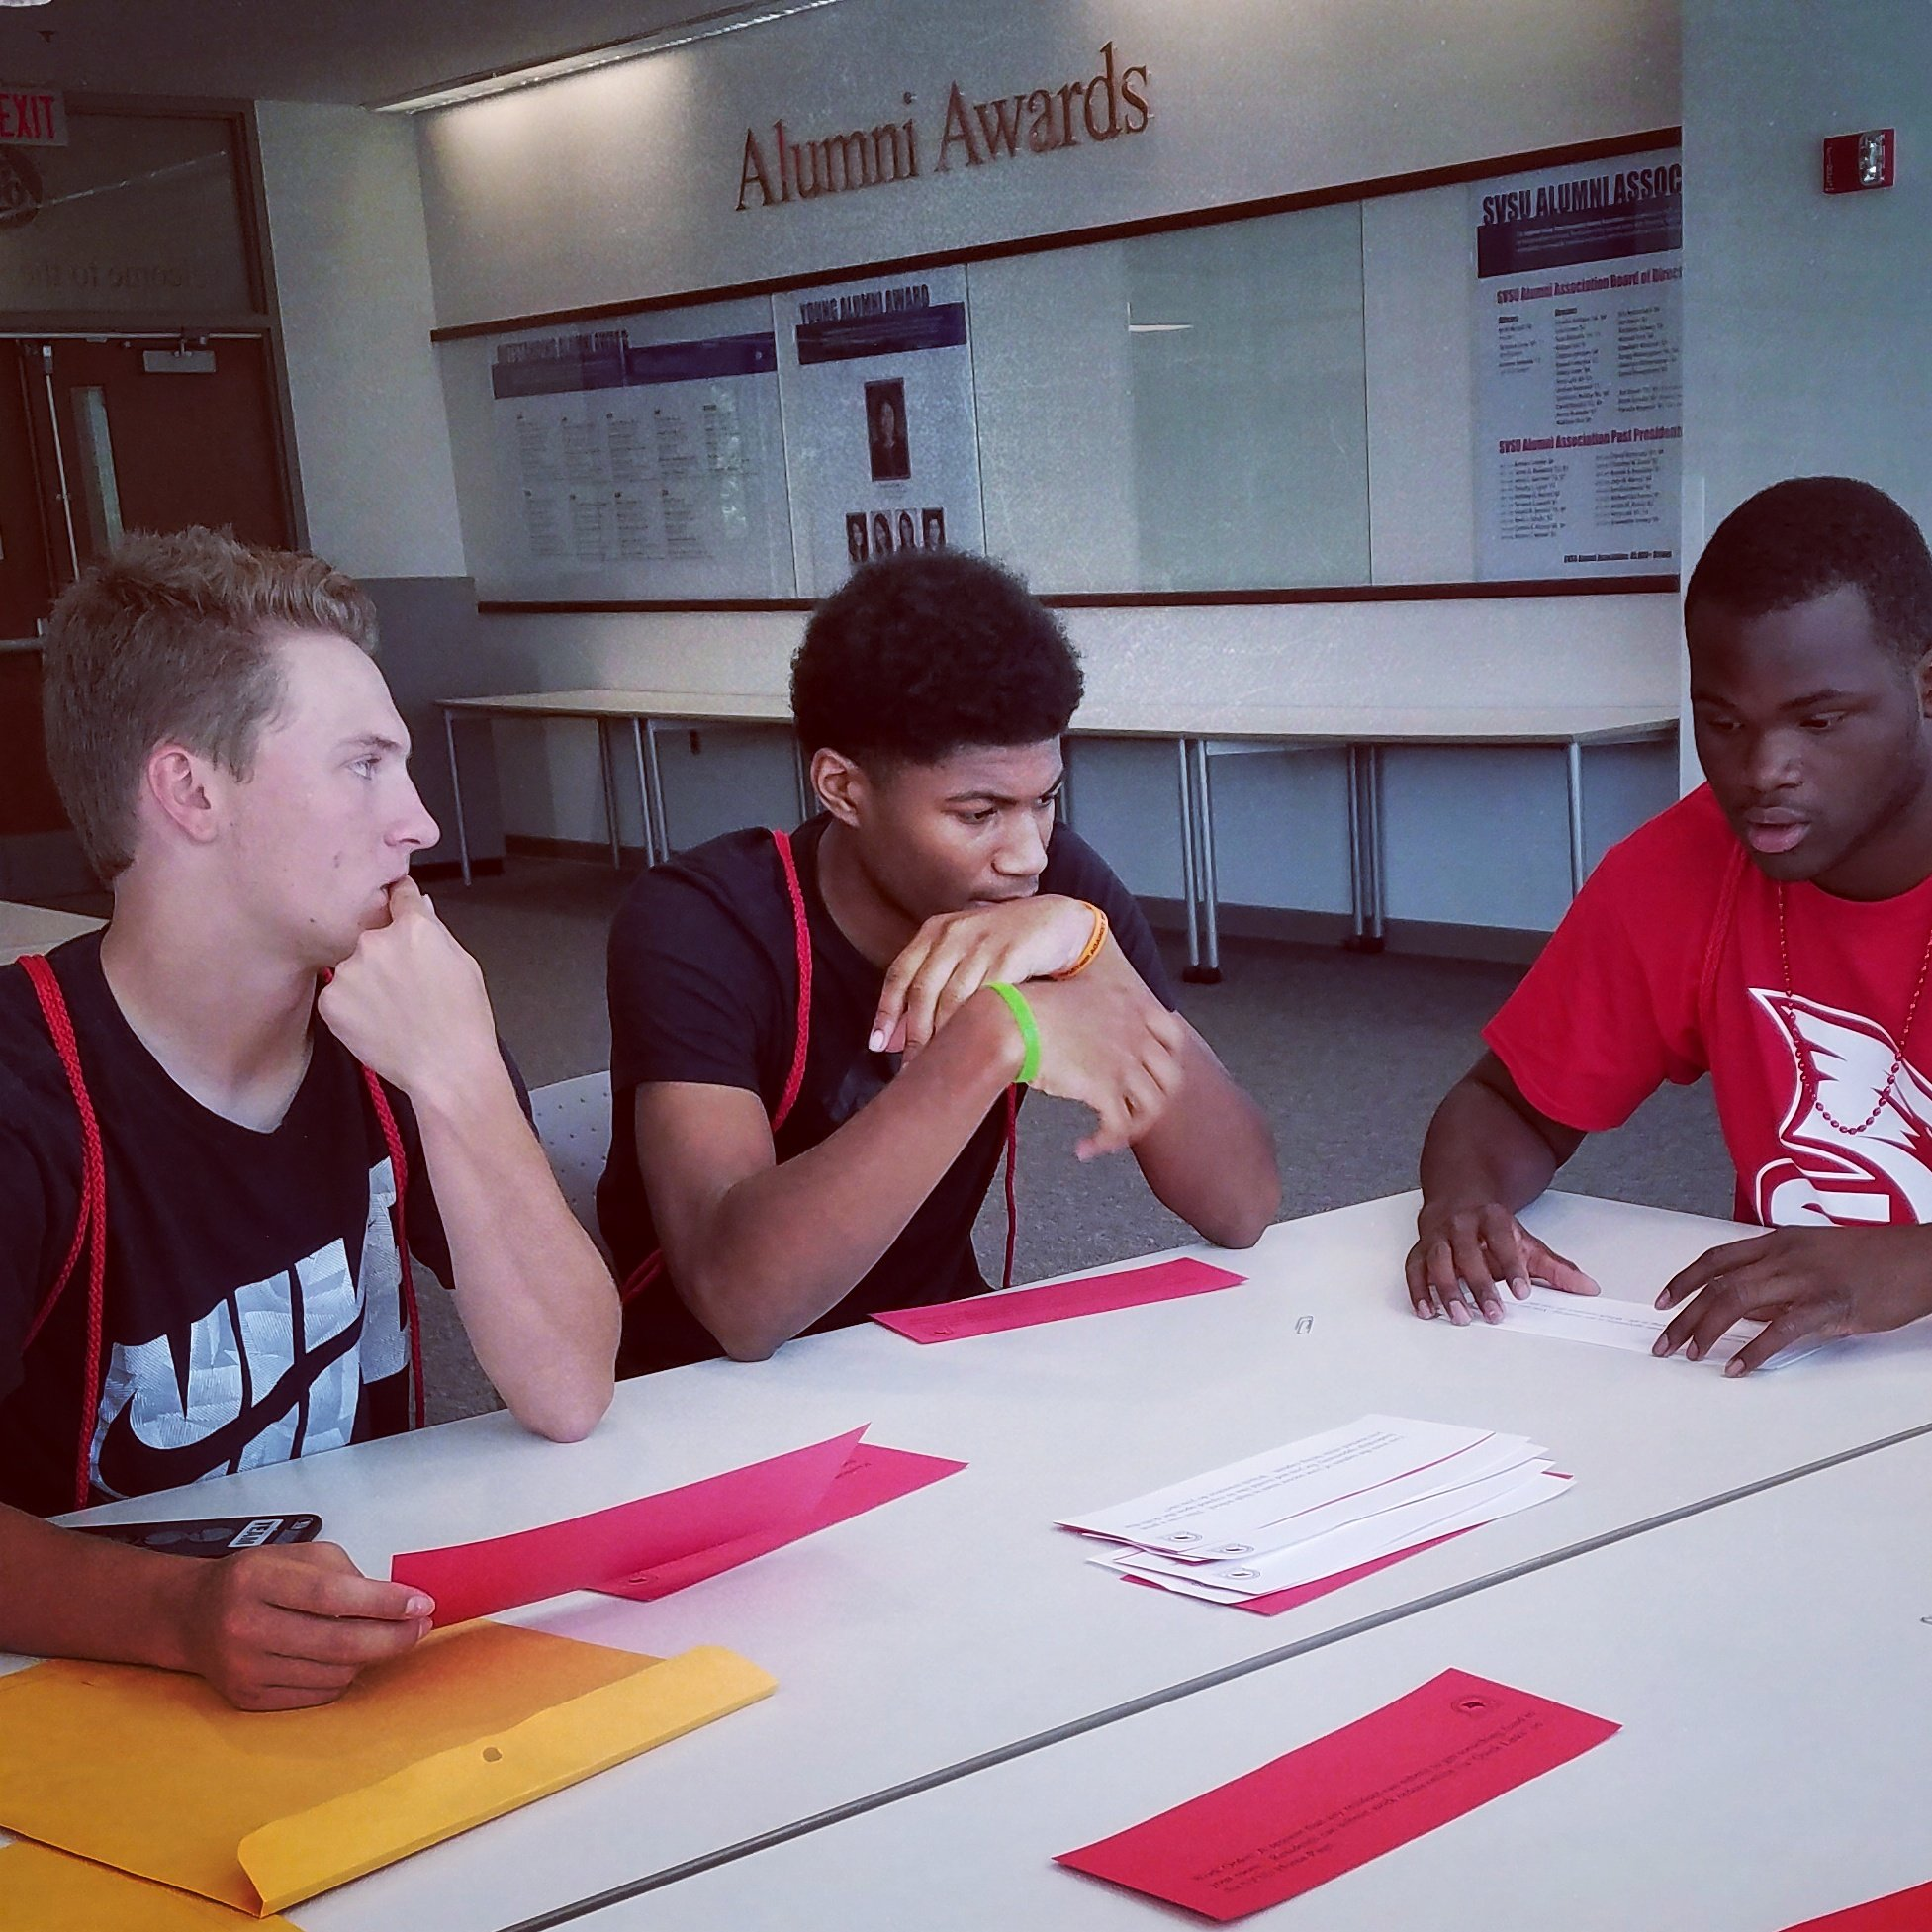 Cardinals finding solutions to life's challenges at #SVSOAR17 #Wecardinal  #reslife https://t.co/XzRElCyifZ